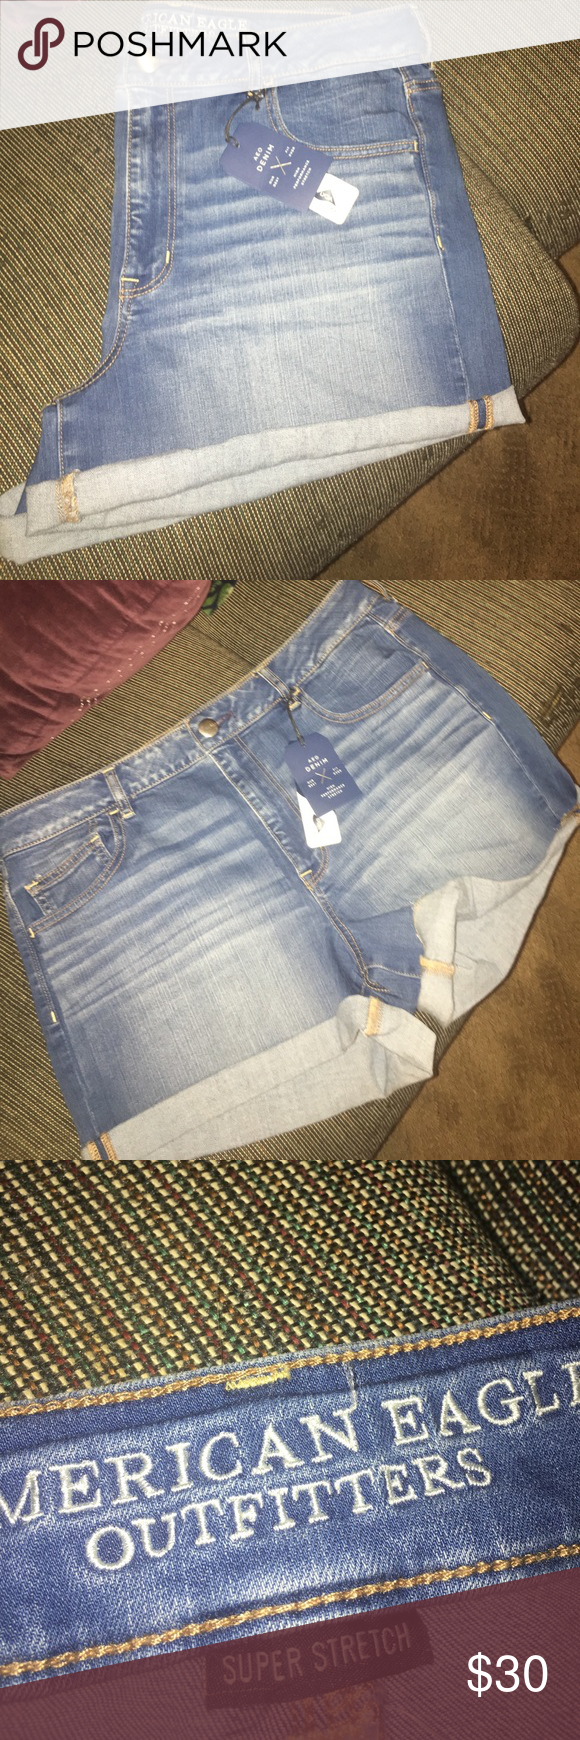 American eagle hi rise shorties Brand new never worn. American Eagle Outfitters Shorts Jean Shorts